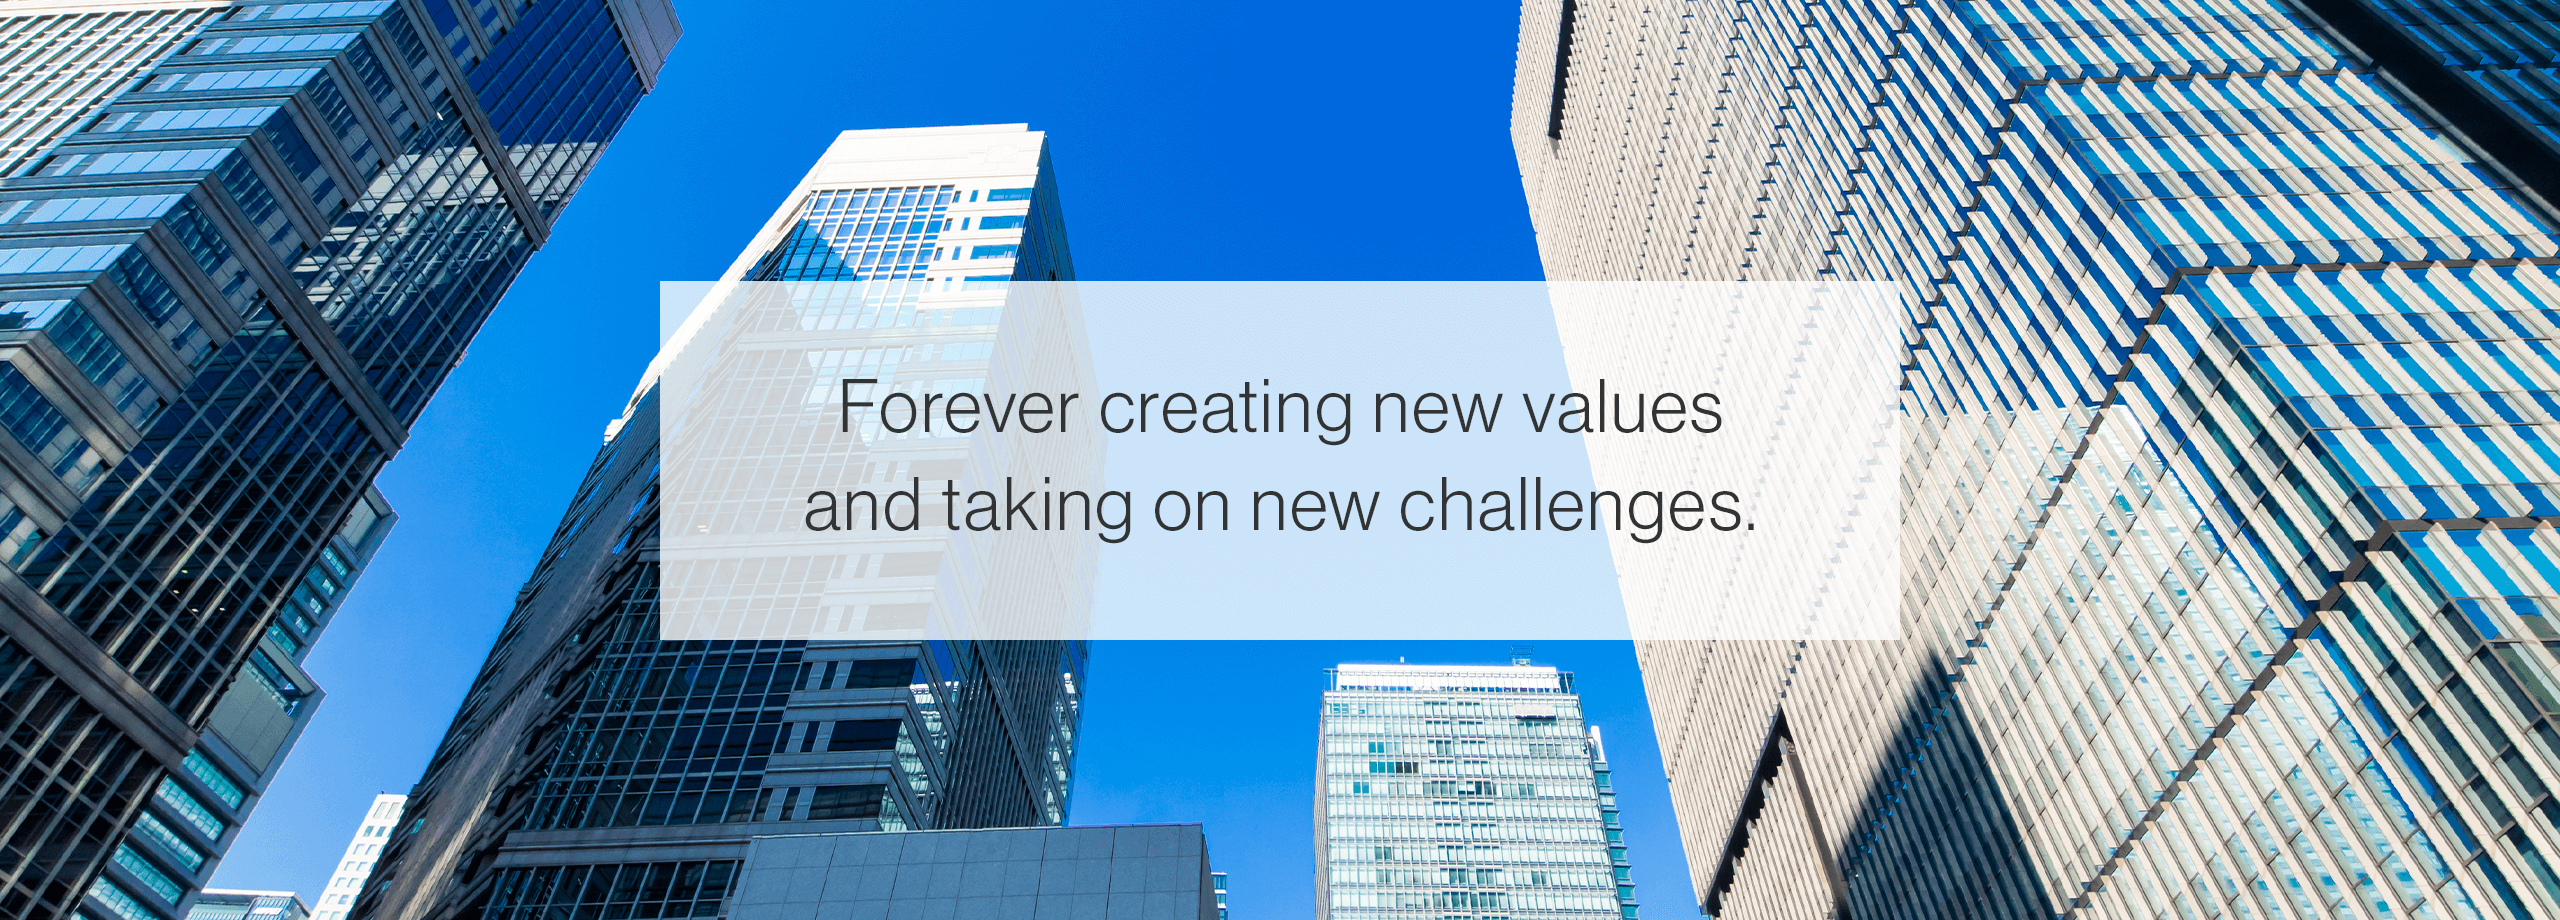 Forever creating new values and taking on new challenges.